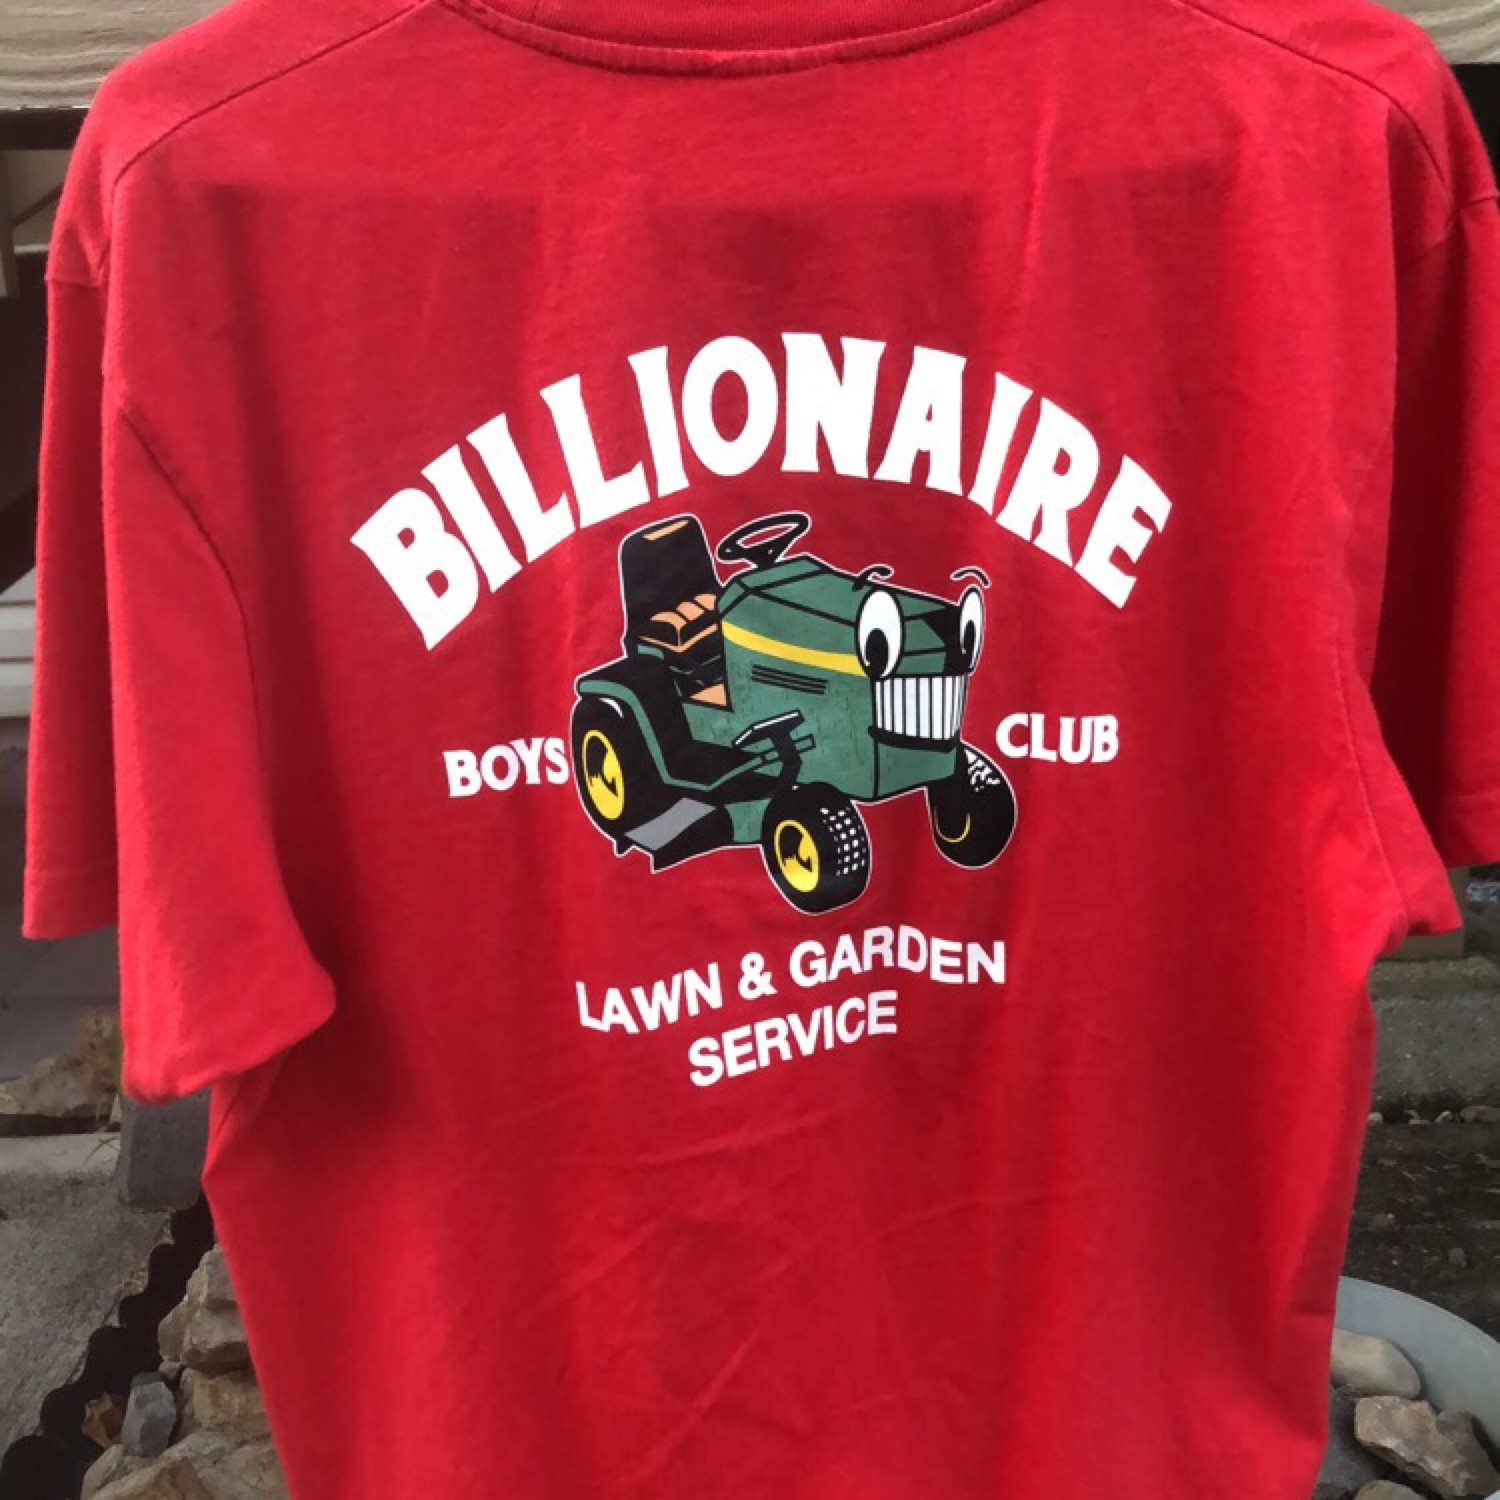 Billionaire Boys Club T Shirt U2018Lawn U0026 Gardenu2019